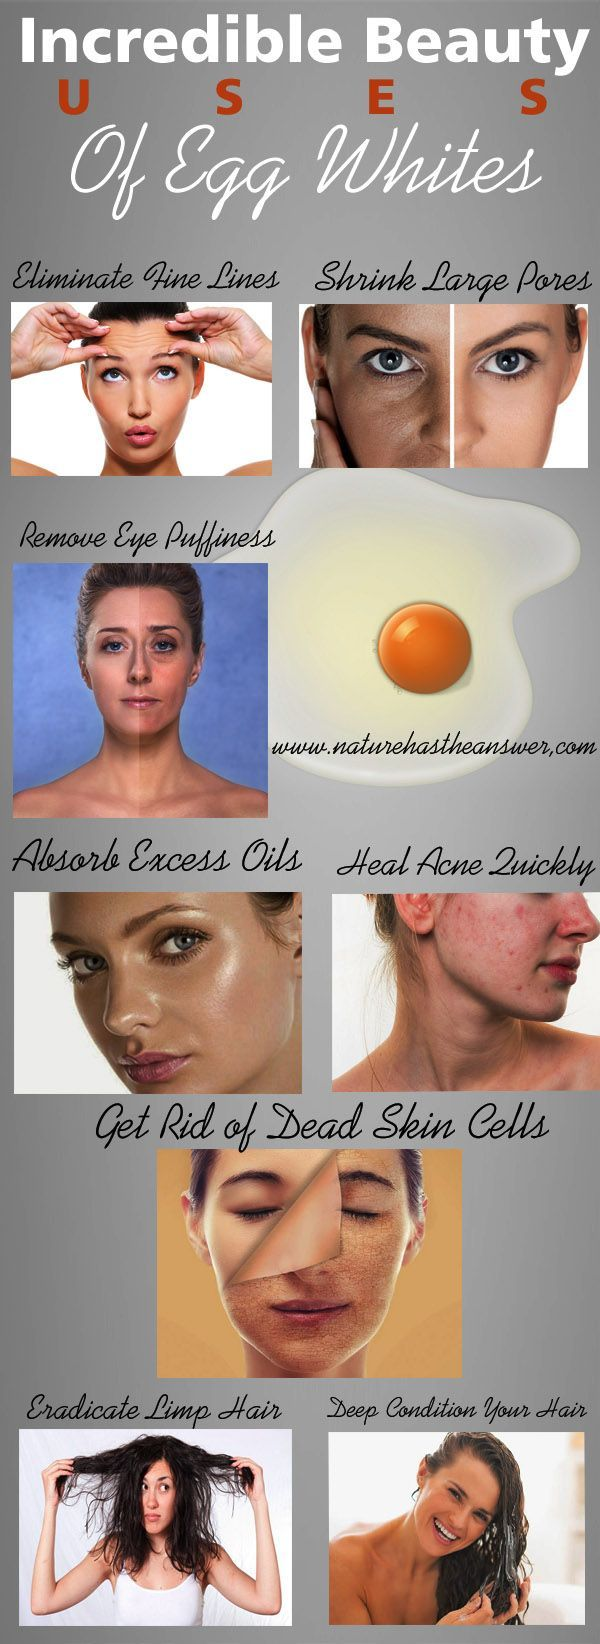 Beauty & Personal Care : Skin Care : makeup http://amzn.to/2k7ygfa